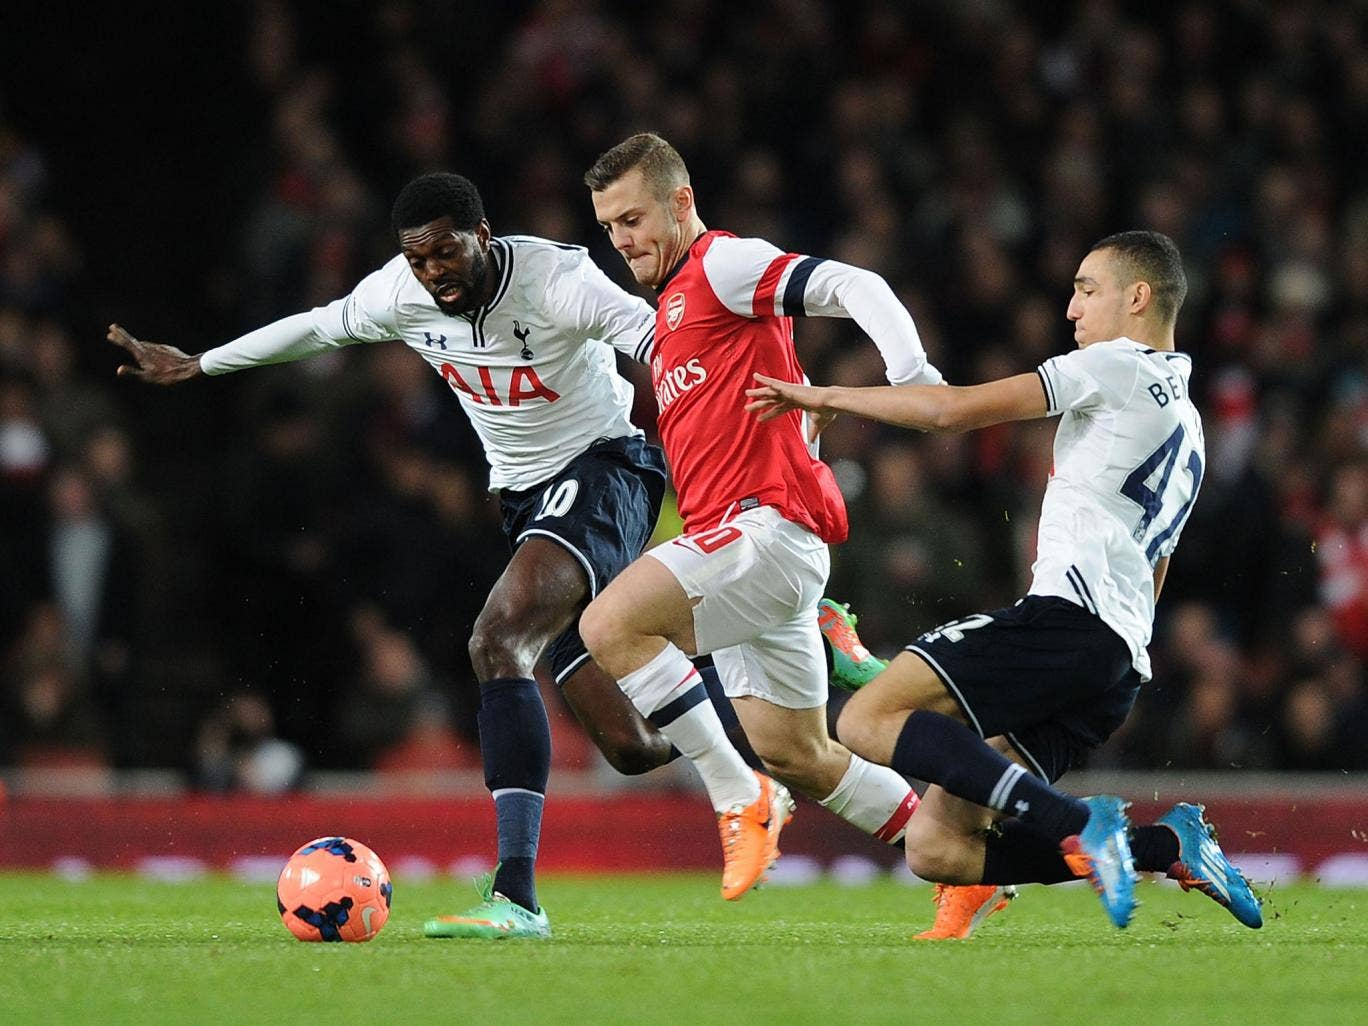 Jack WIlshere attempts to unlock the Tottenham defence during Arsenal's 2-0 FA Cup victory